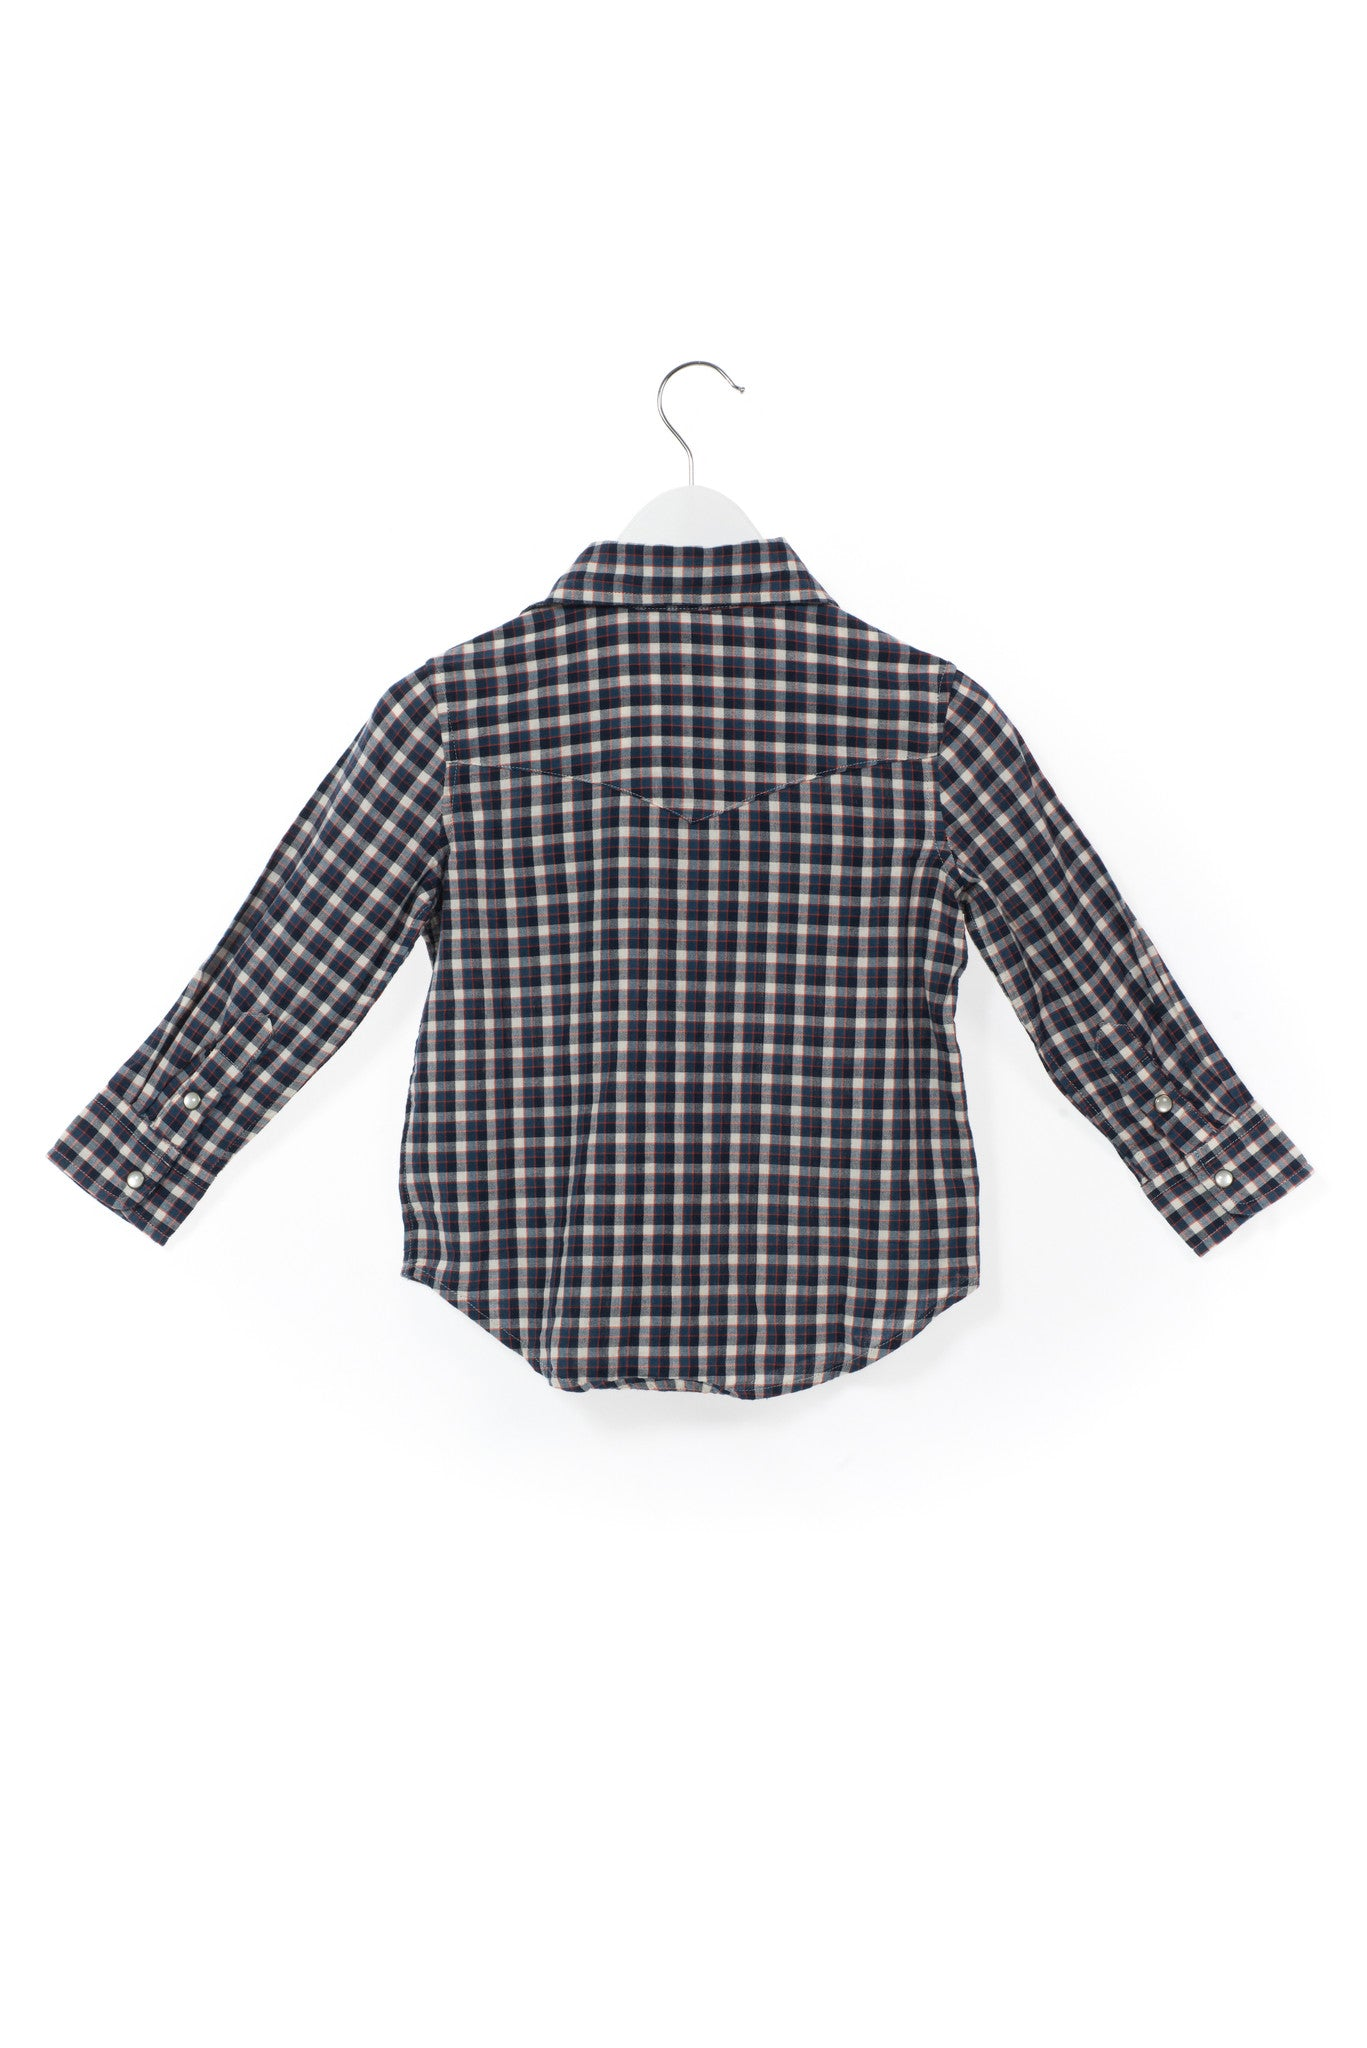 10001172 Polo Ralph Lauren Kids~Shirt 2T at Retykle